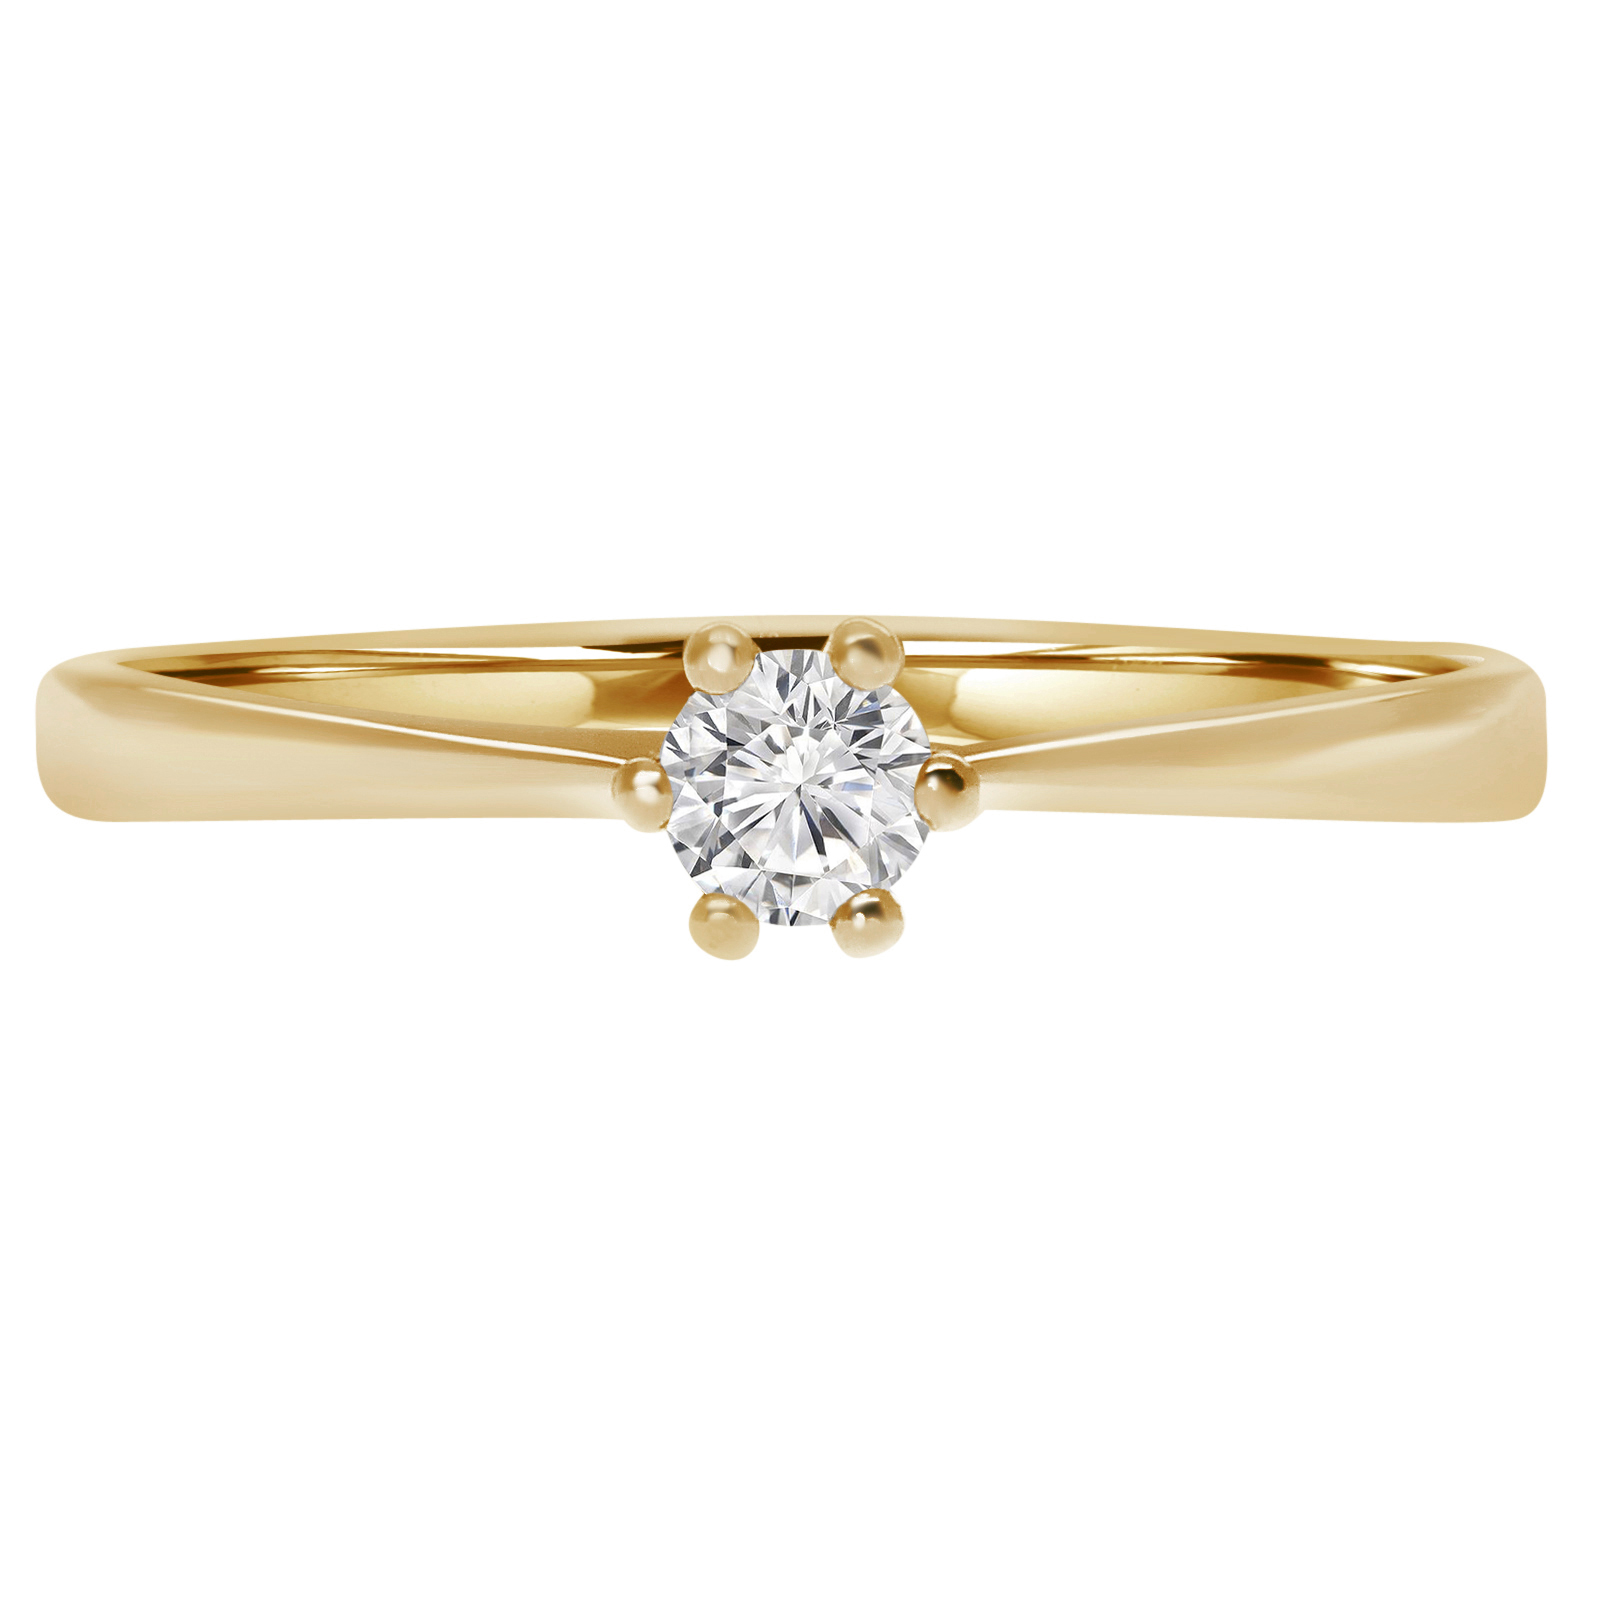 rings engagement gold diamondland diamond ring in jewelry solitaire white